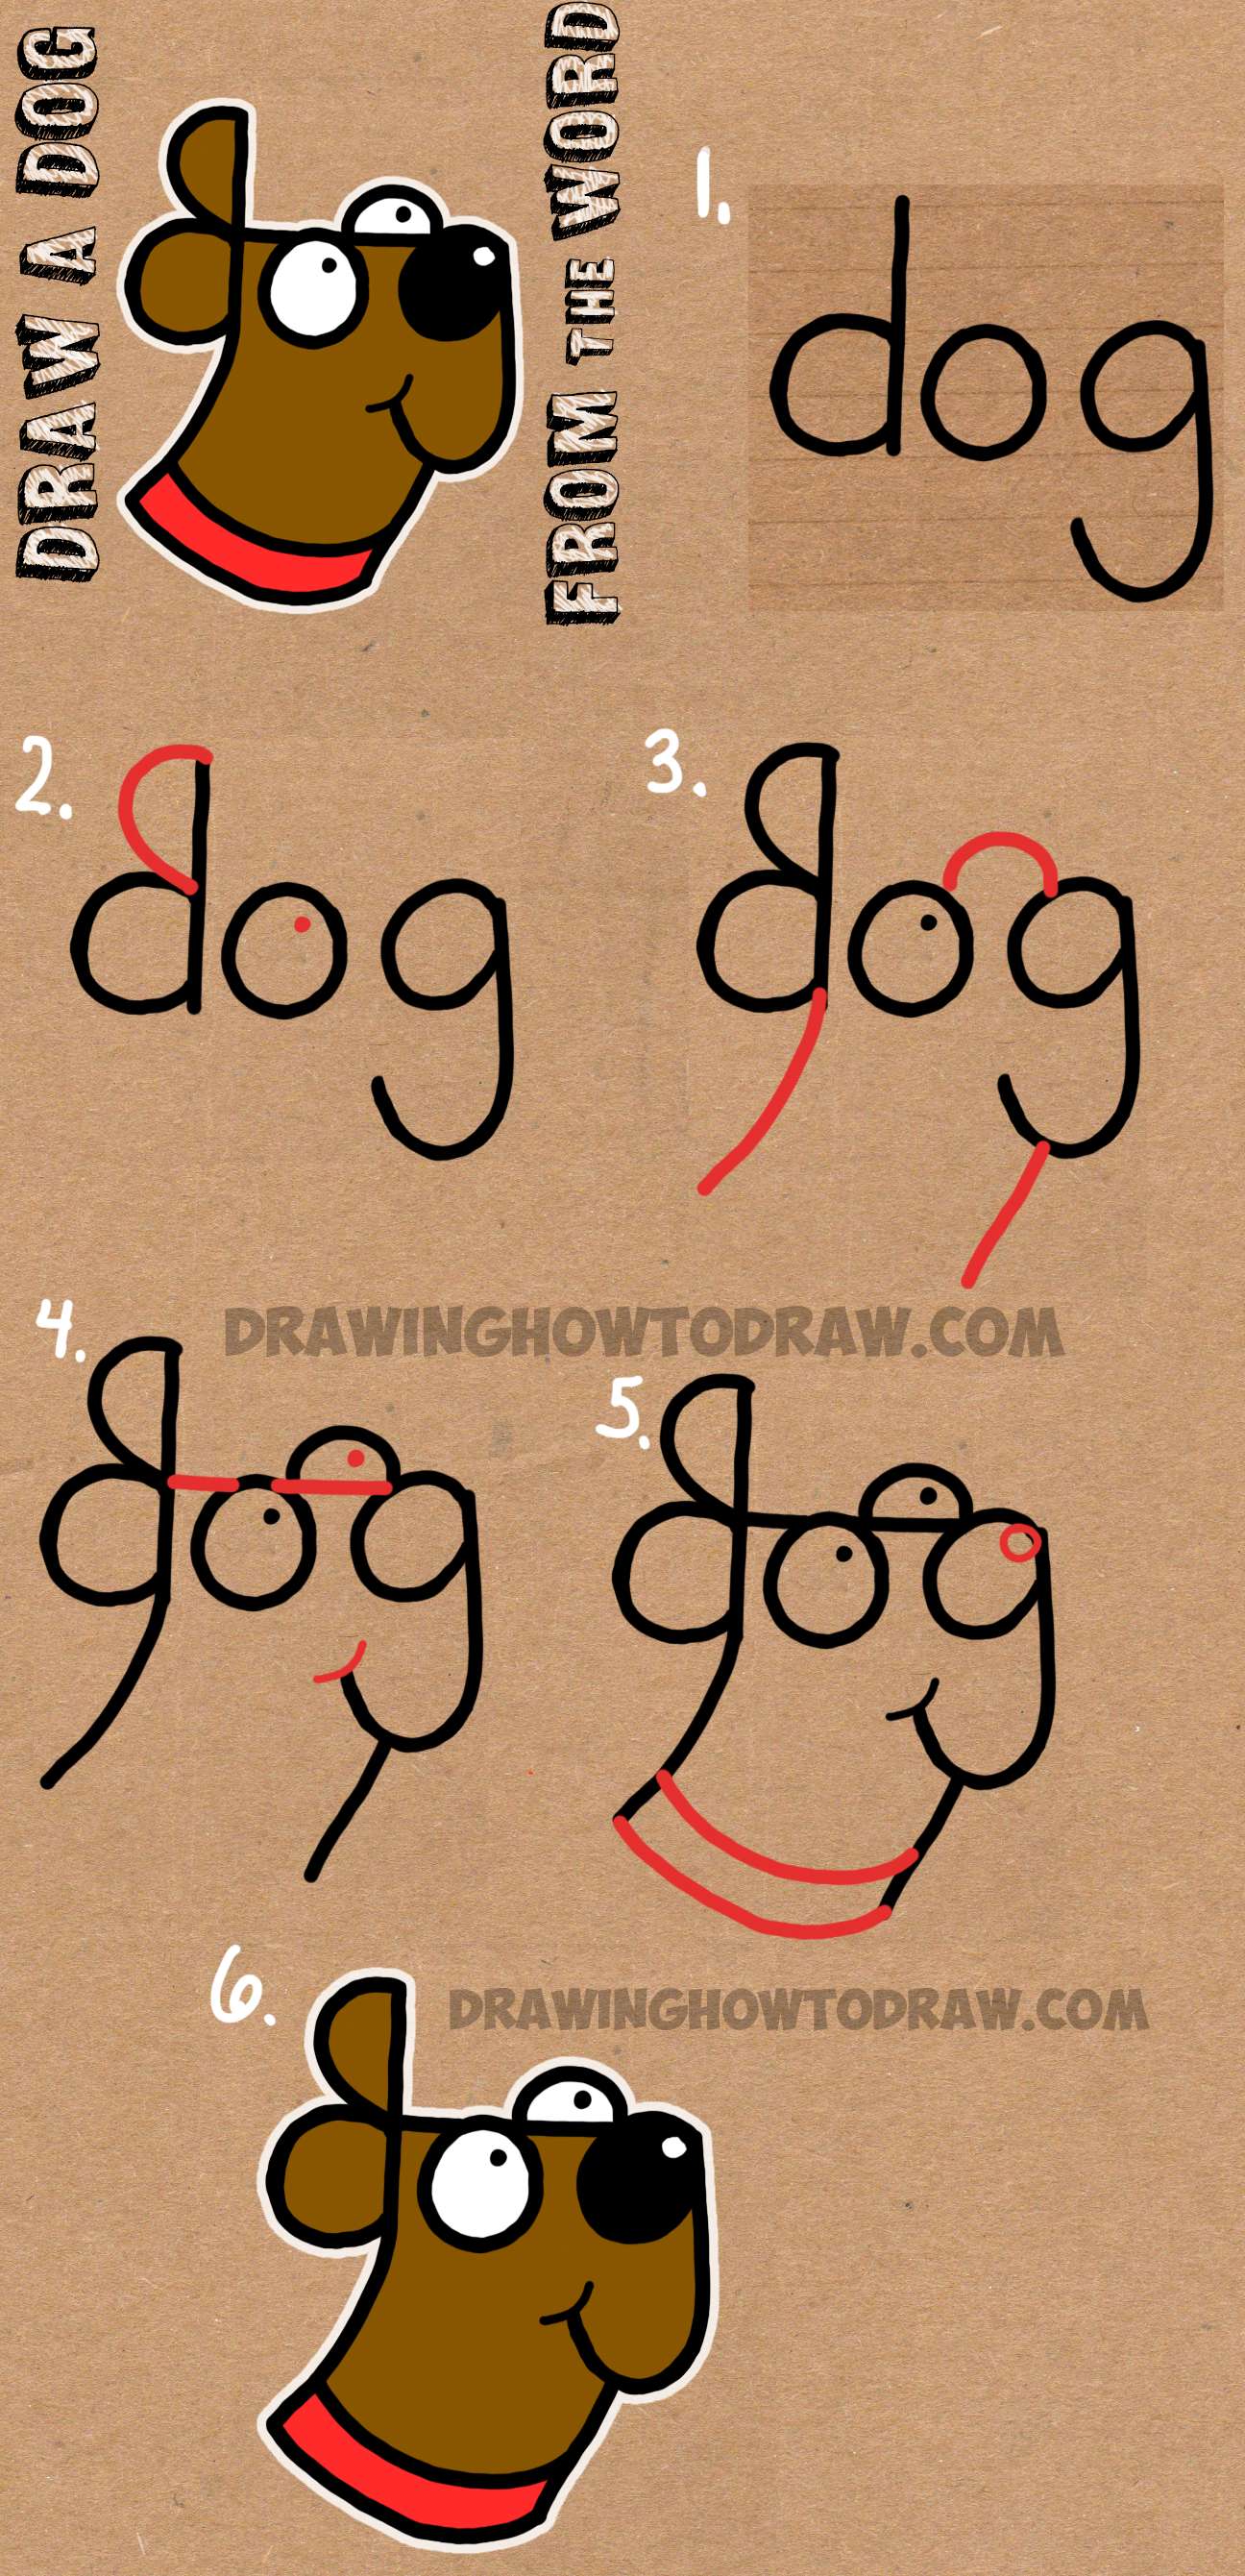 Drawing Lines With Word : How to draw a dog from the word easy step by